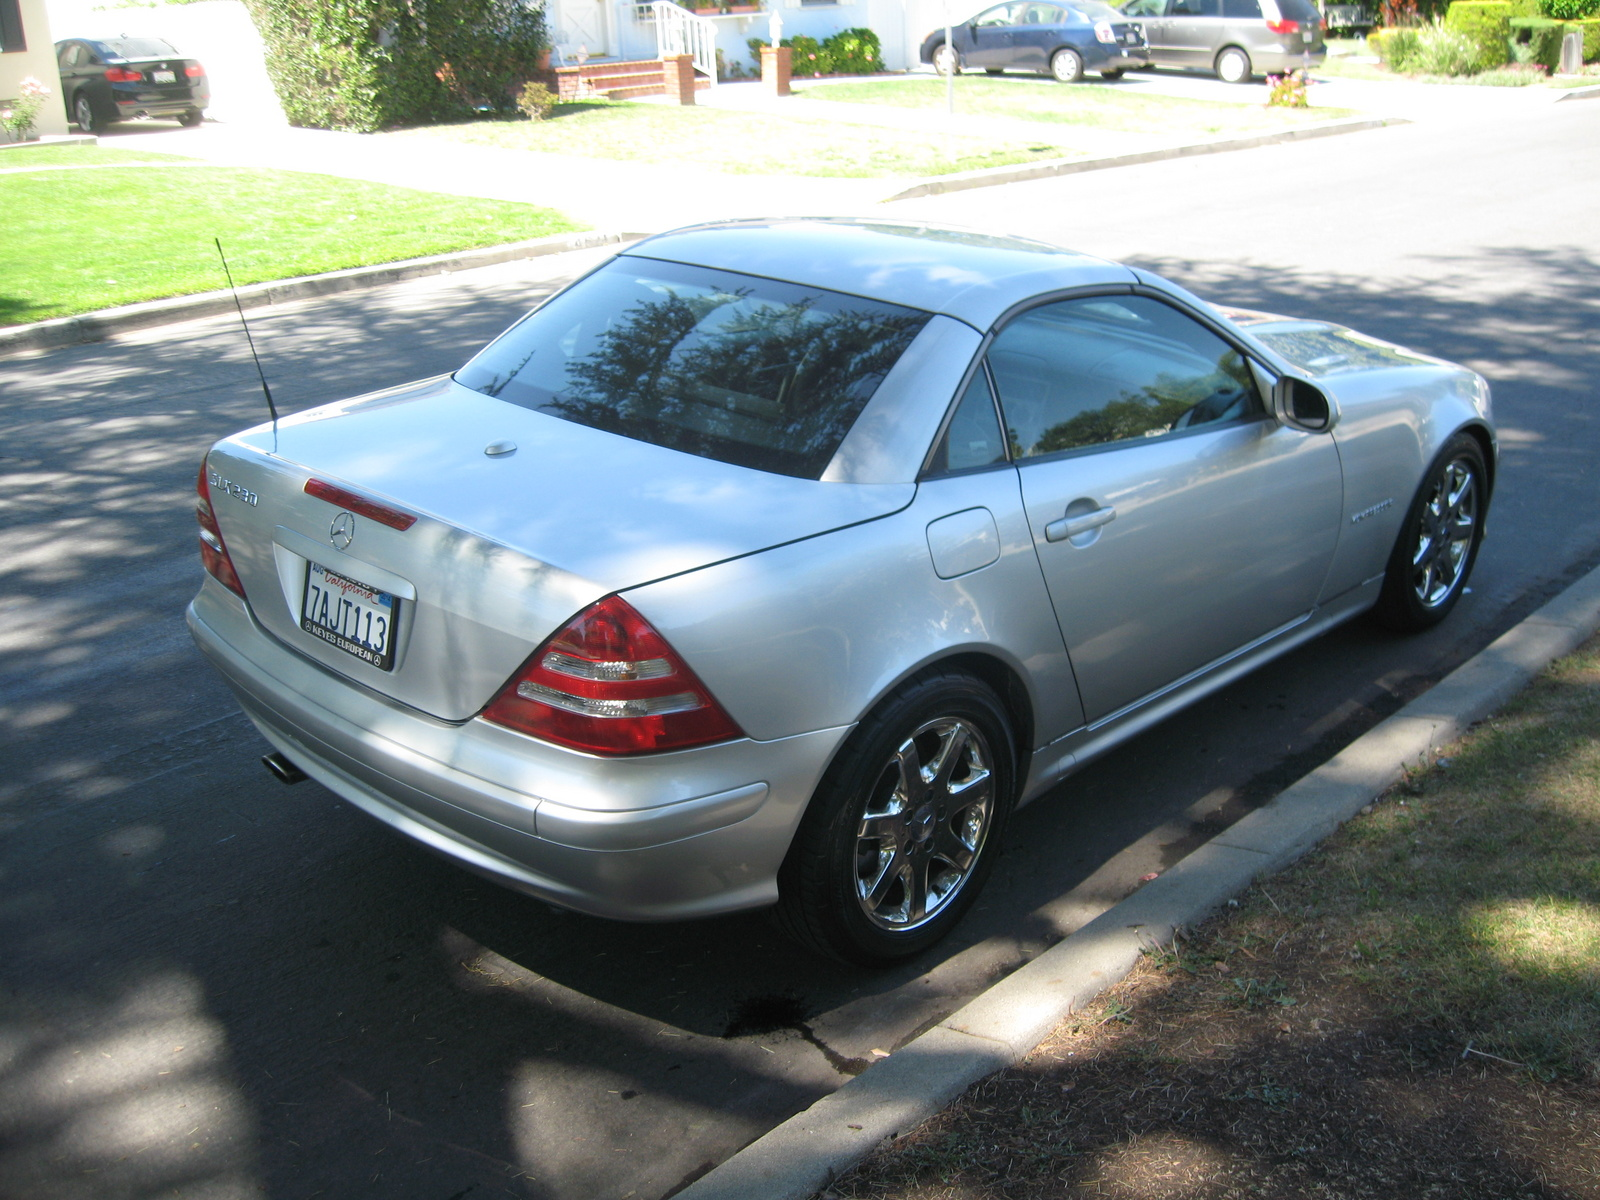 Picture of 2002 Mercedes-Benz SLK-Class 2 Dr SLK230 Supercharged Convertible